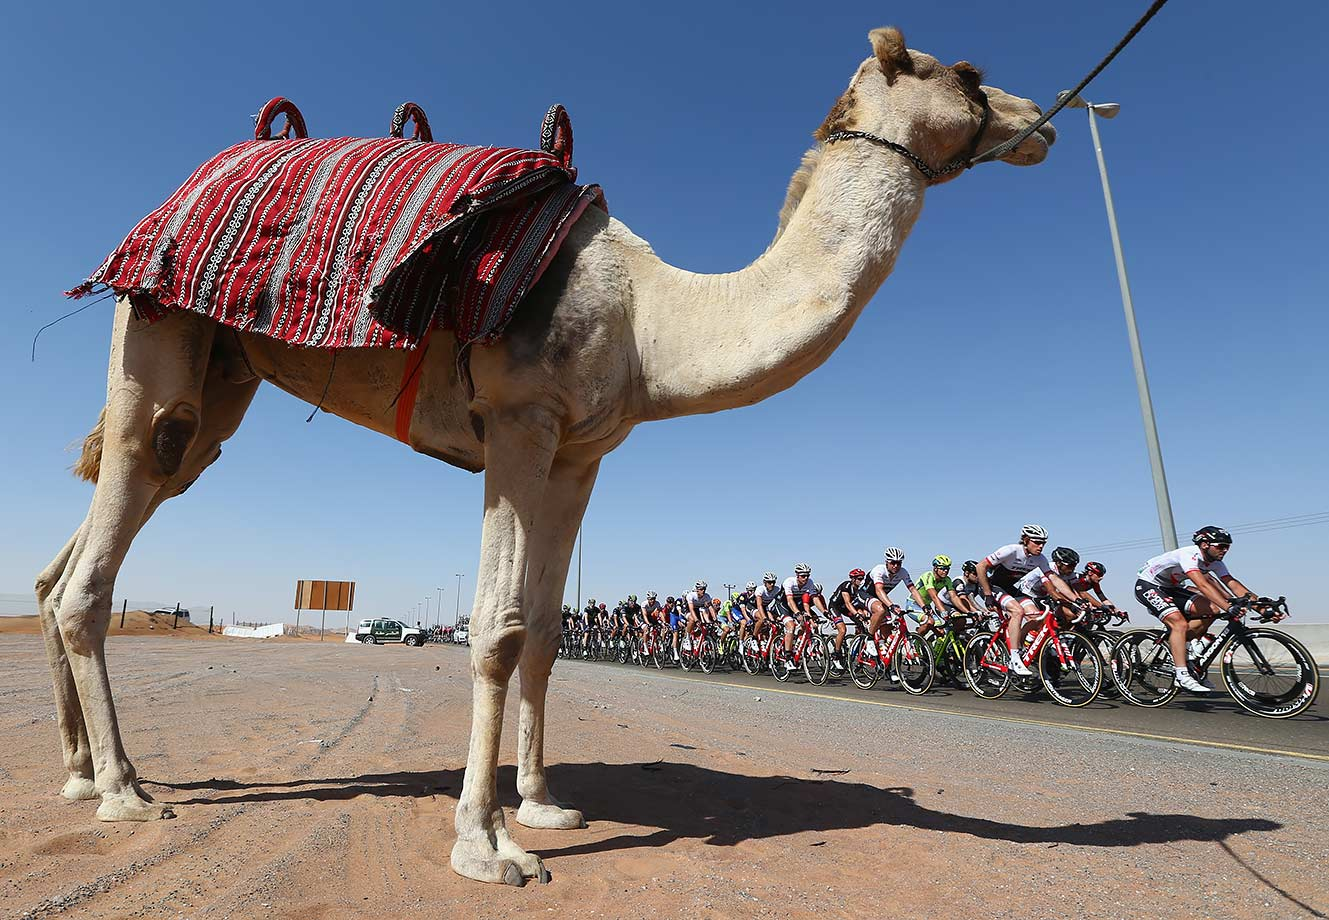 The peloton pass by a camel during the Westin Stage Three of the Tour of Dubai, United Arab Emirates.